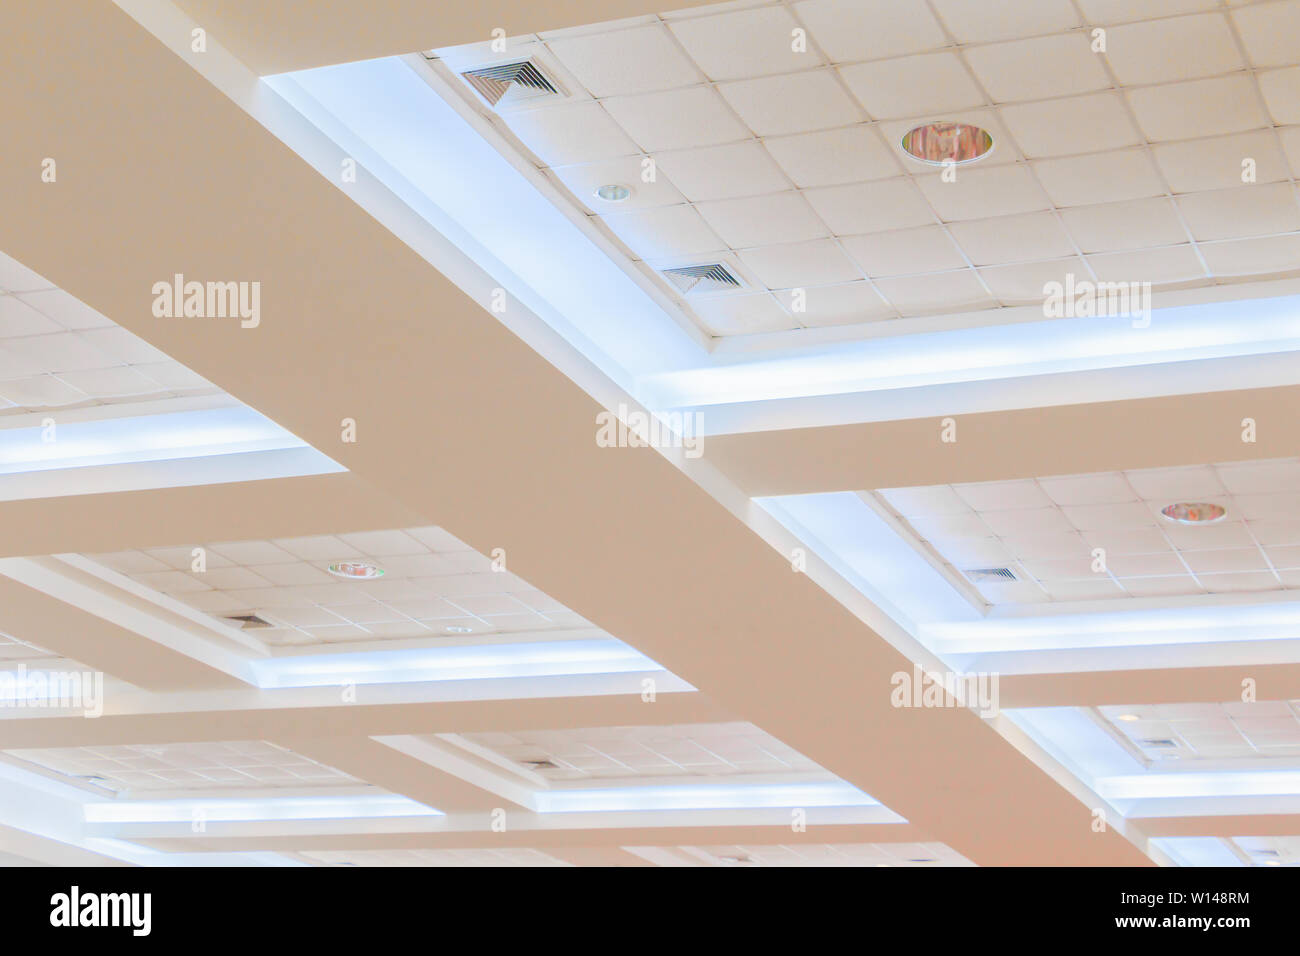 Ceiling Gypsum Of Business Interior Office Building And Light Neon Style Monochrome With Copy Space Add Text Stock Photo Alamy